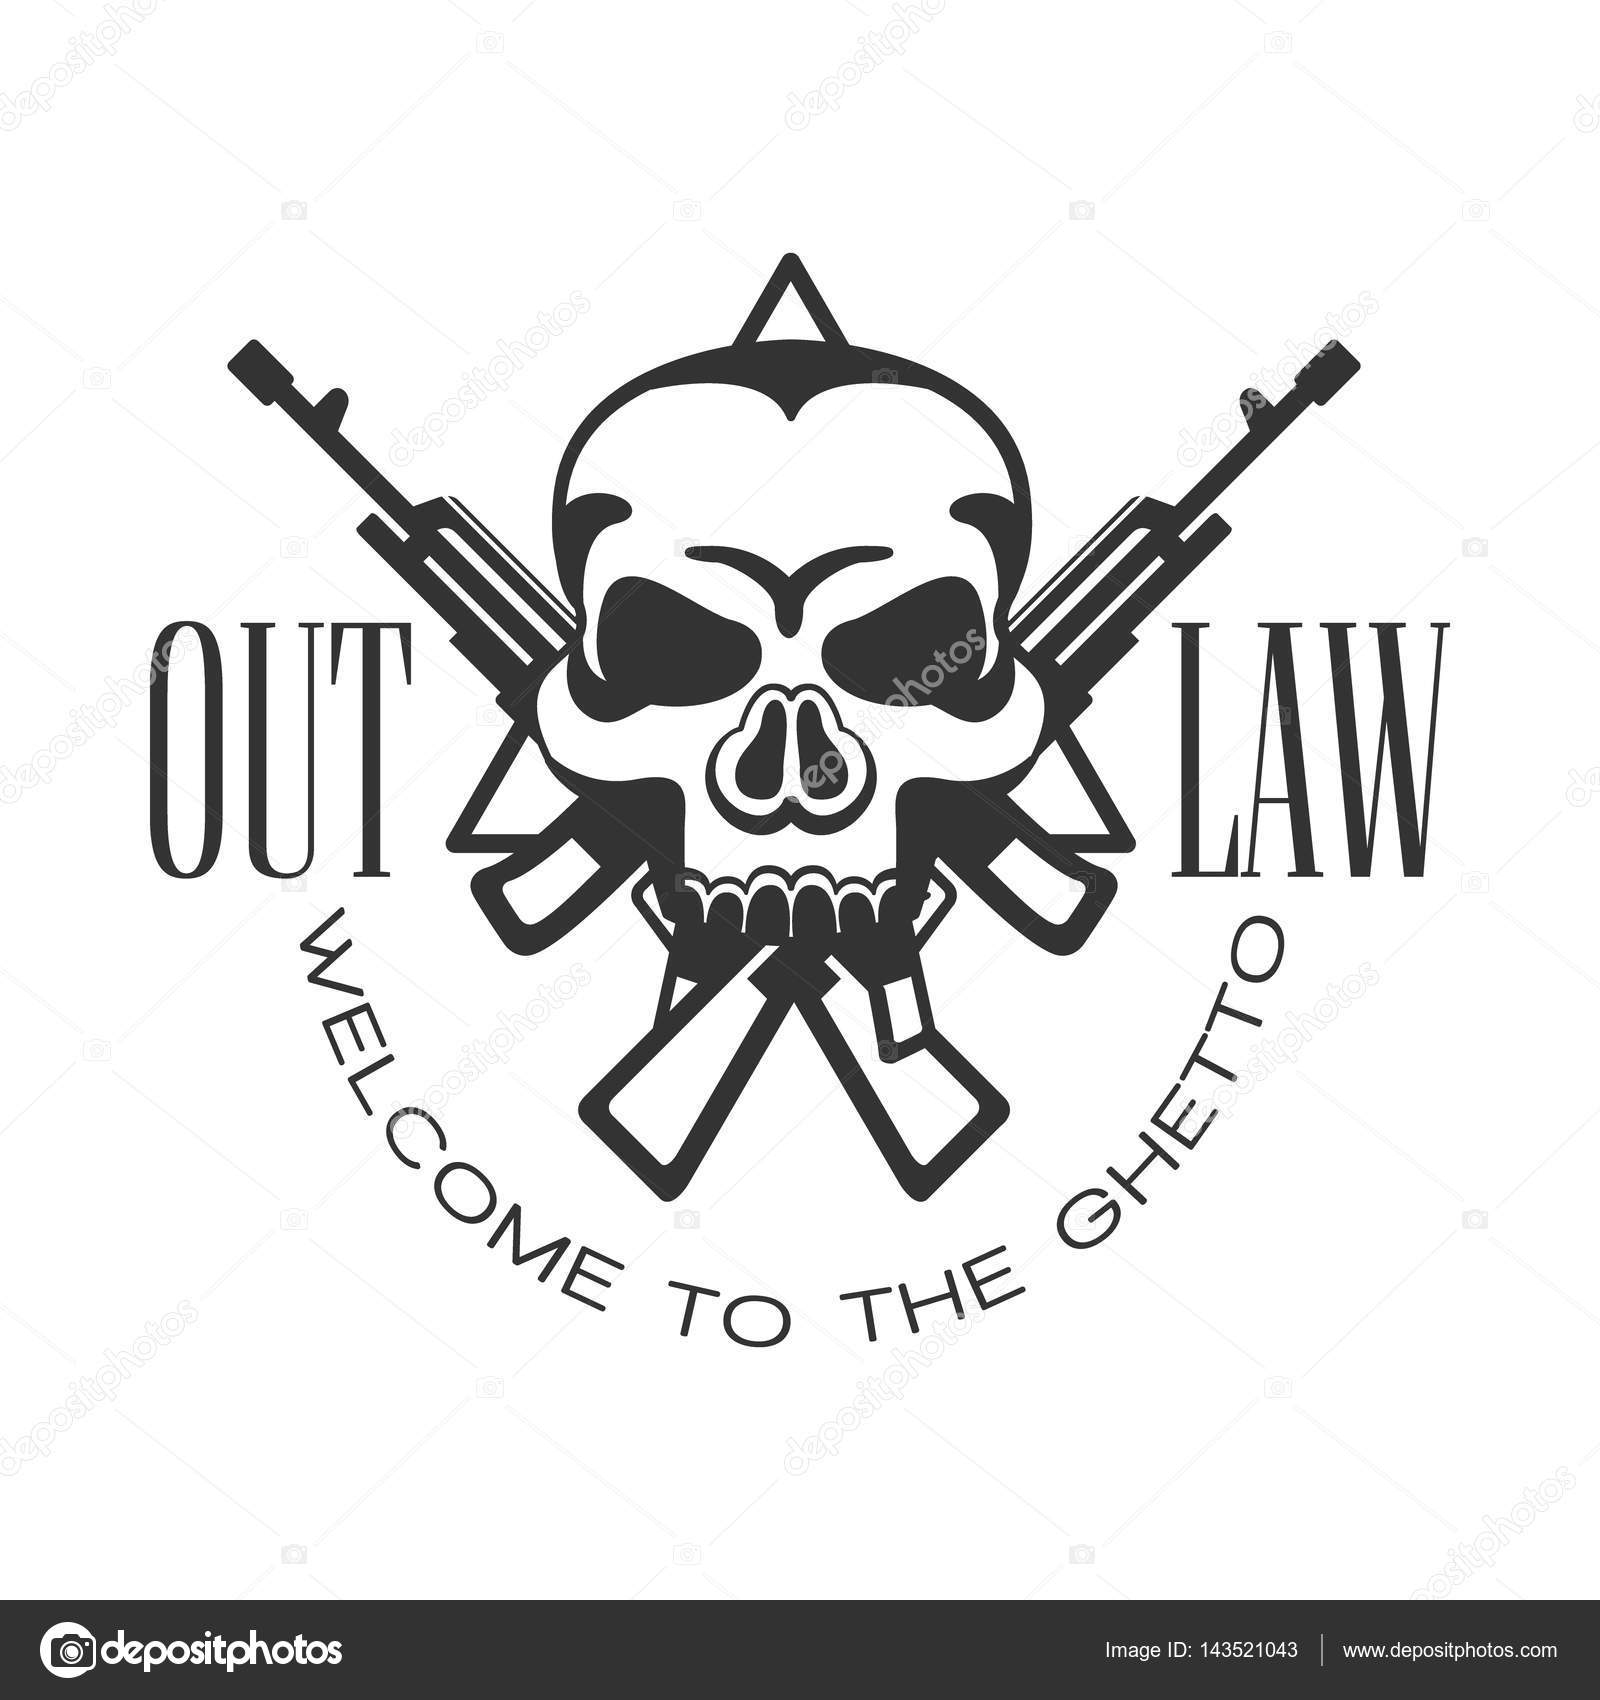 Criminal outlaw street club black and white sign design template criminal outlaw street club black and white sign design template with text crossed guns and scull monochrome vector emblem with ghetto symbols for prints biocorpaavc